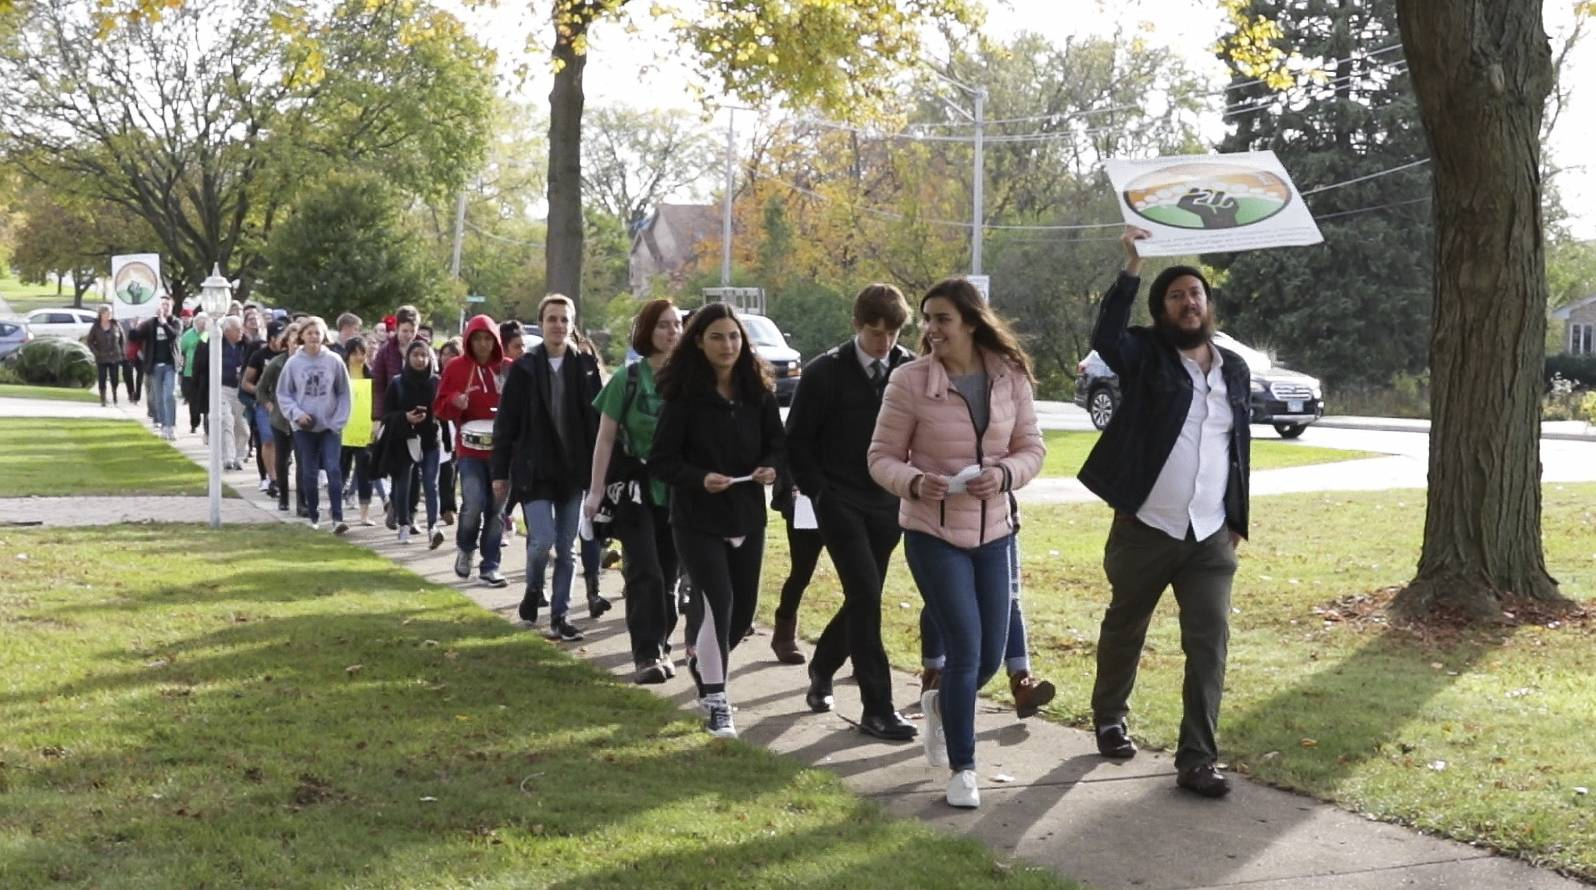 Cristóbal Cavazos with Immigrant Solidarity DuPage, right, leads the way with students from Glenbard East during a Friday march in Lombard.